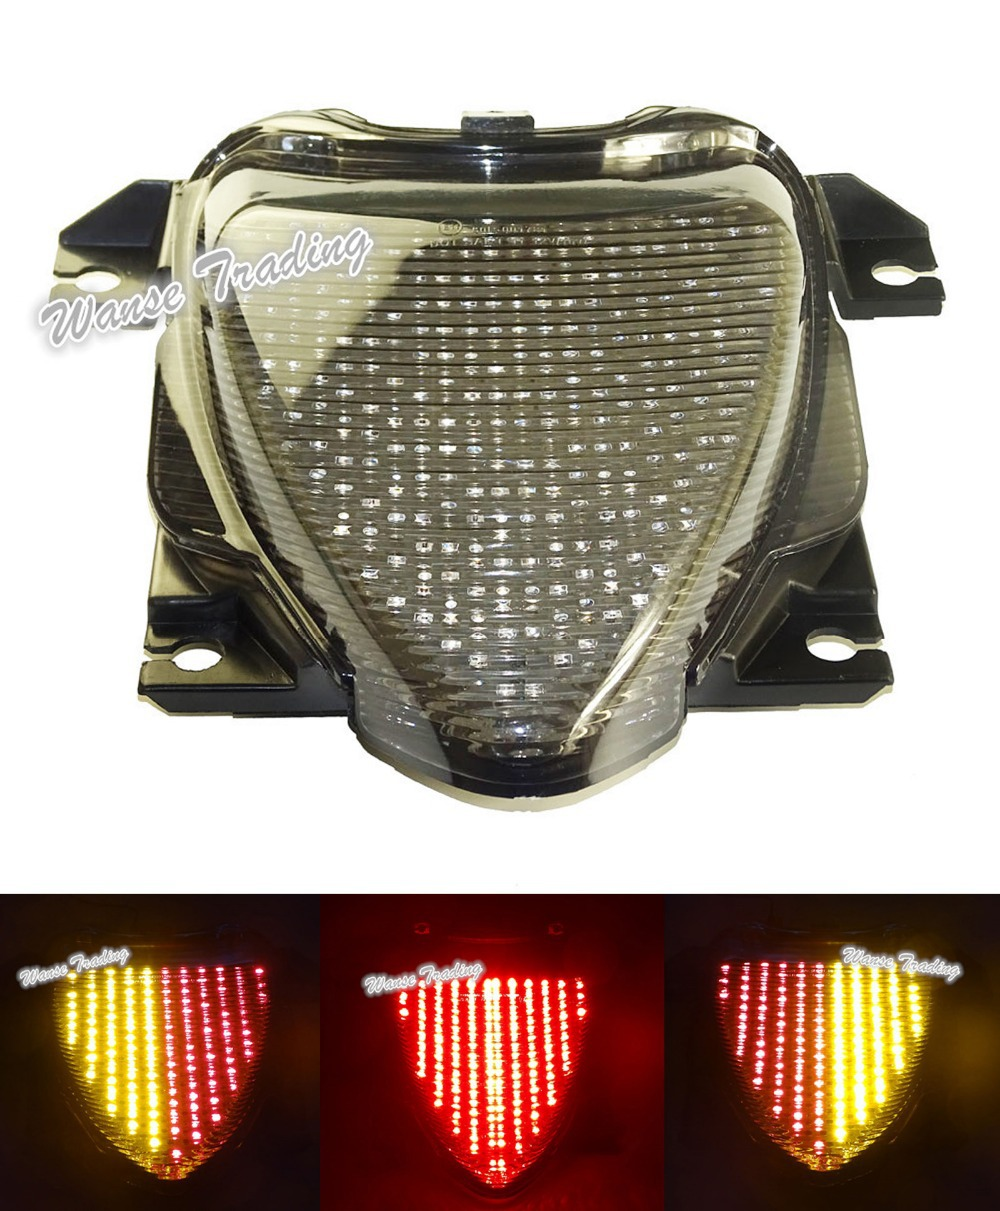 m109r turn signals reviews online shopping m109r turn signals e marked tail brake turn signals integrated led light smoke for 2006 2015 2009 2012 2014 suzuki boulevard m109r vzr1800 m1800r